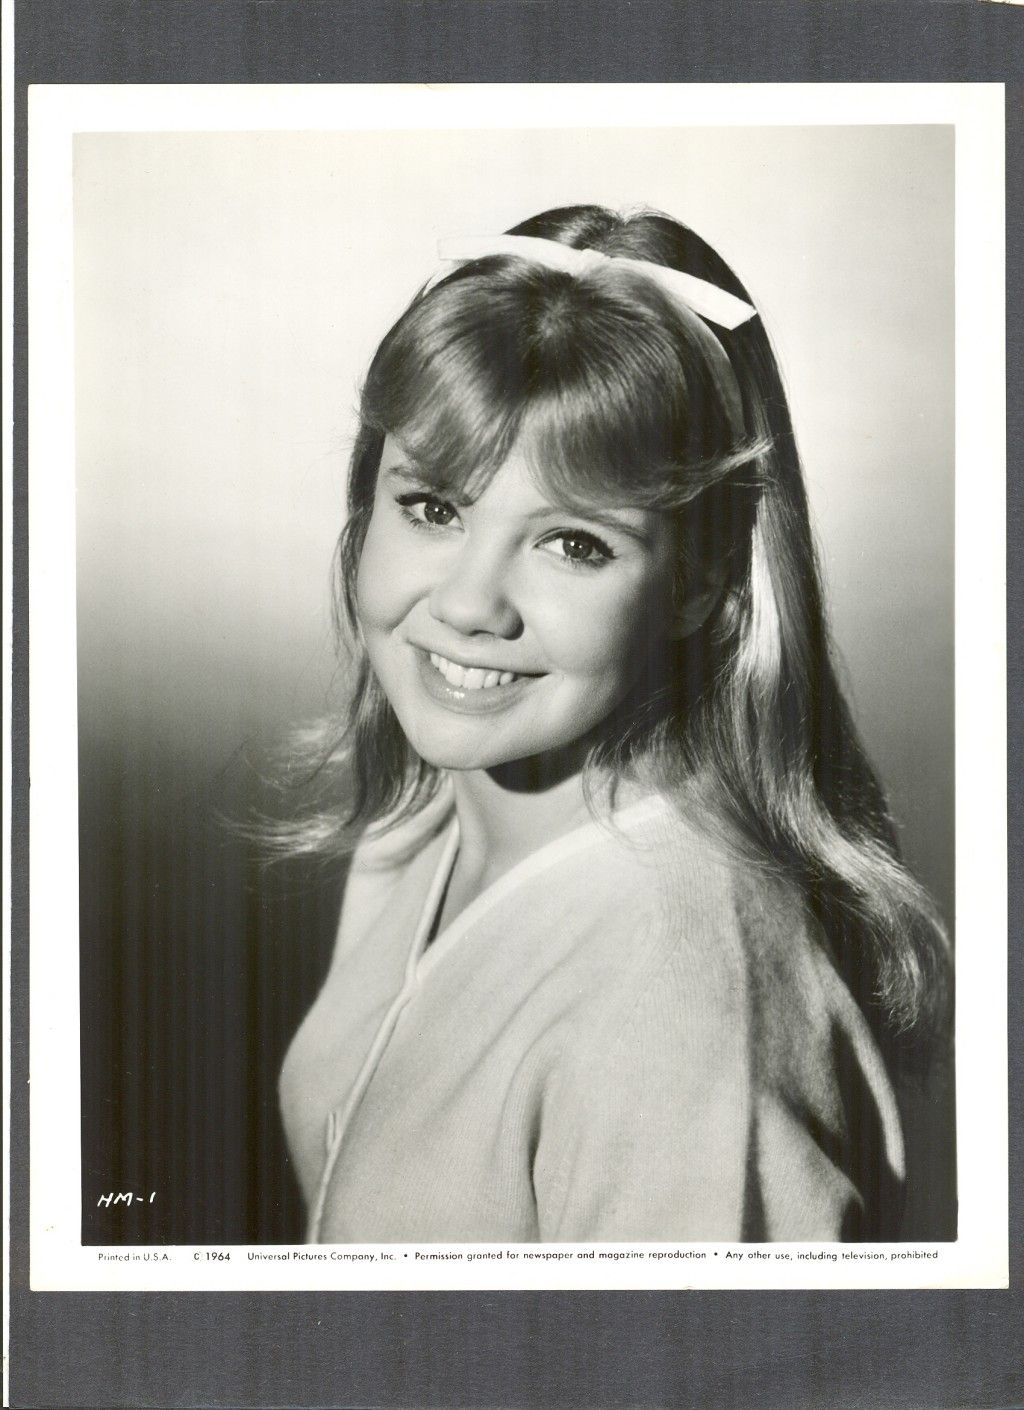 Discussion on this topic: Jessica Leccia, hayley-mills-born-1946/